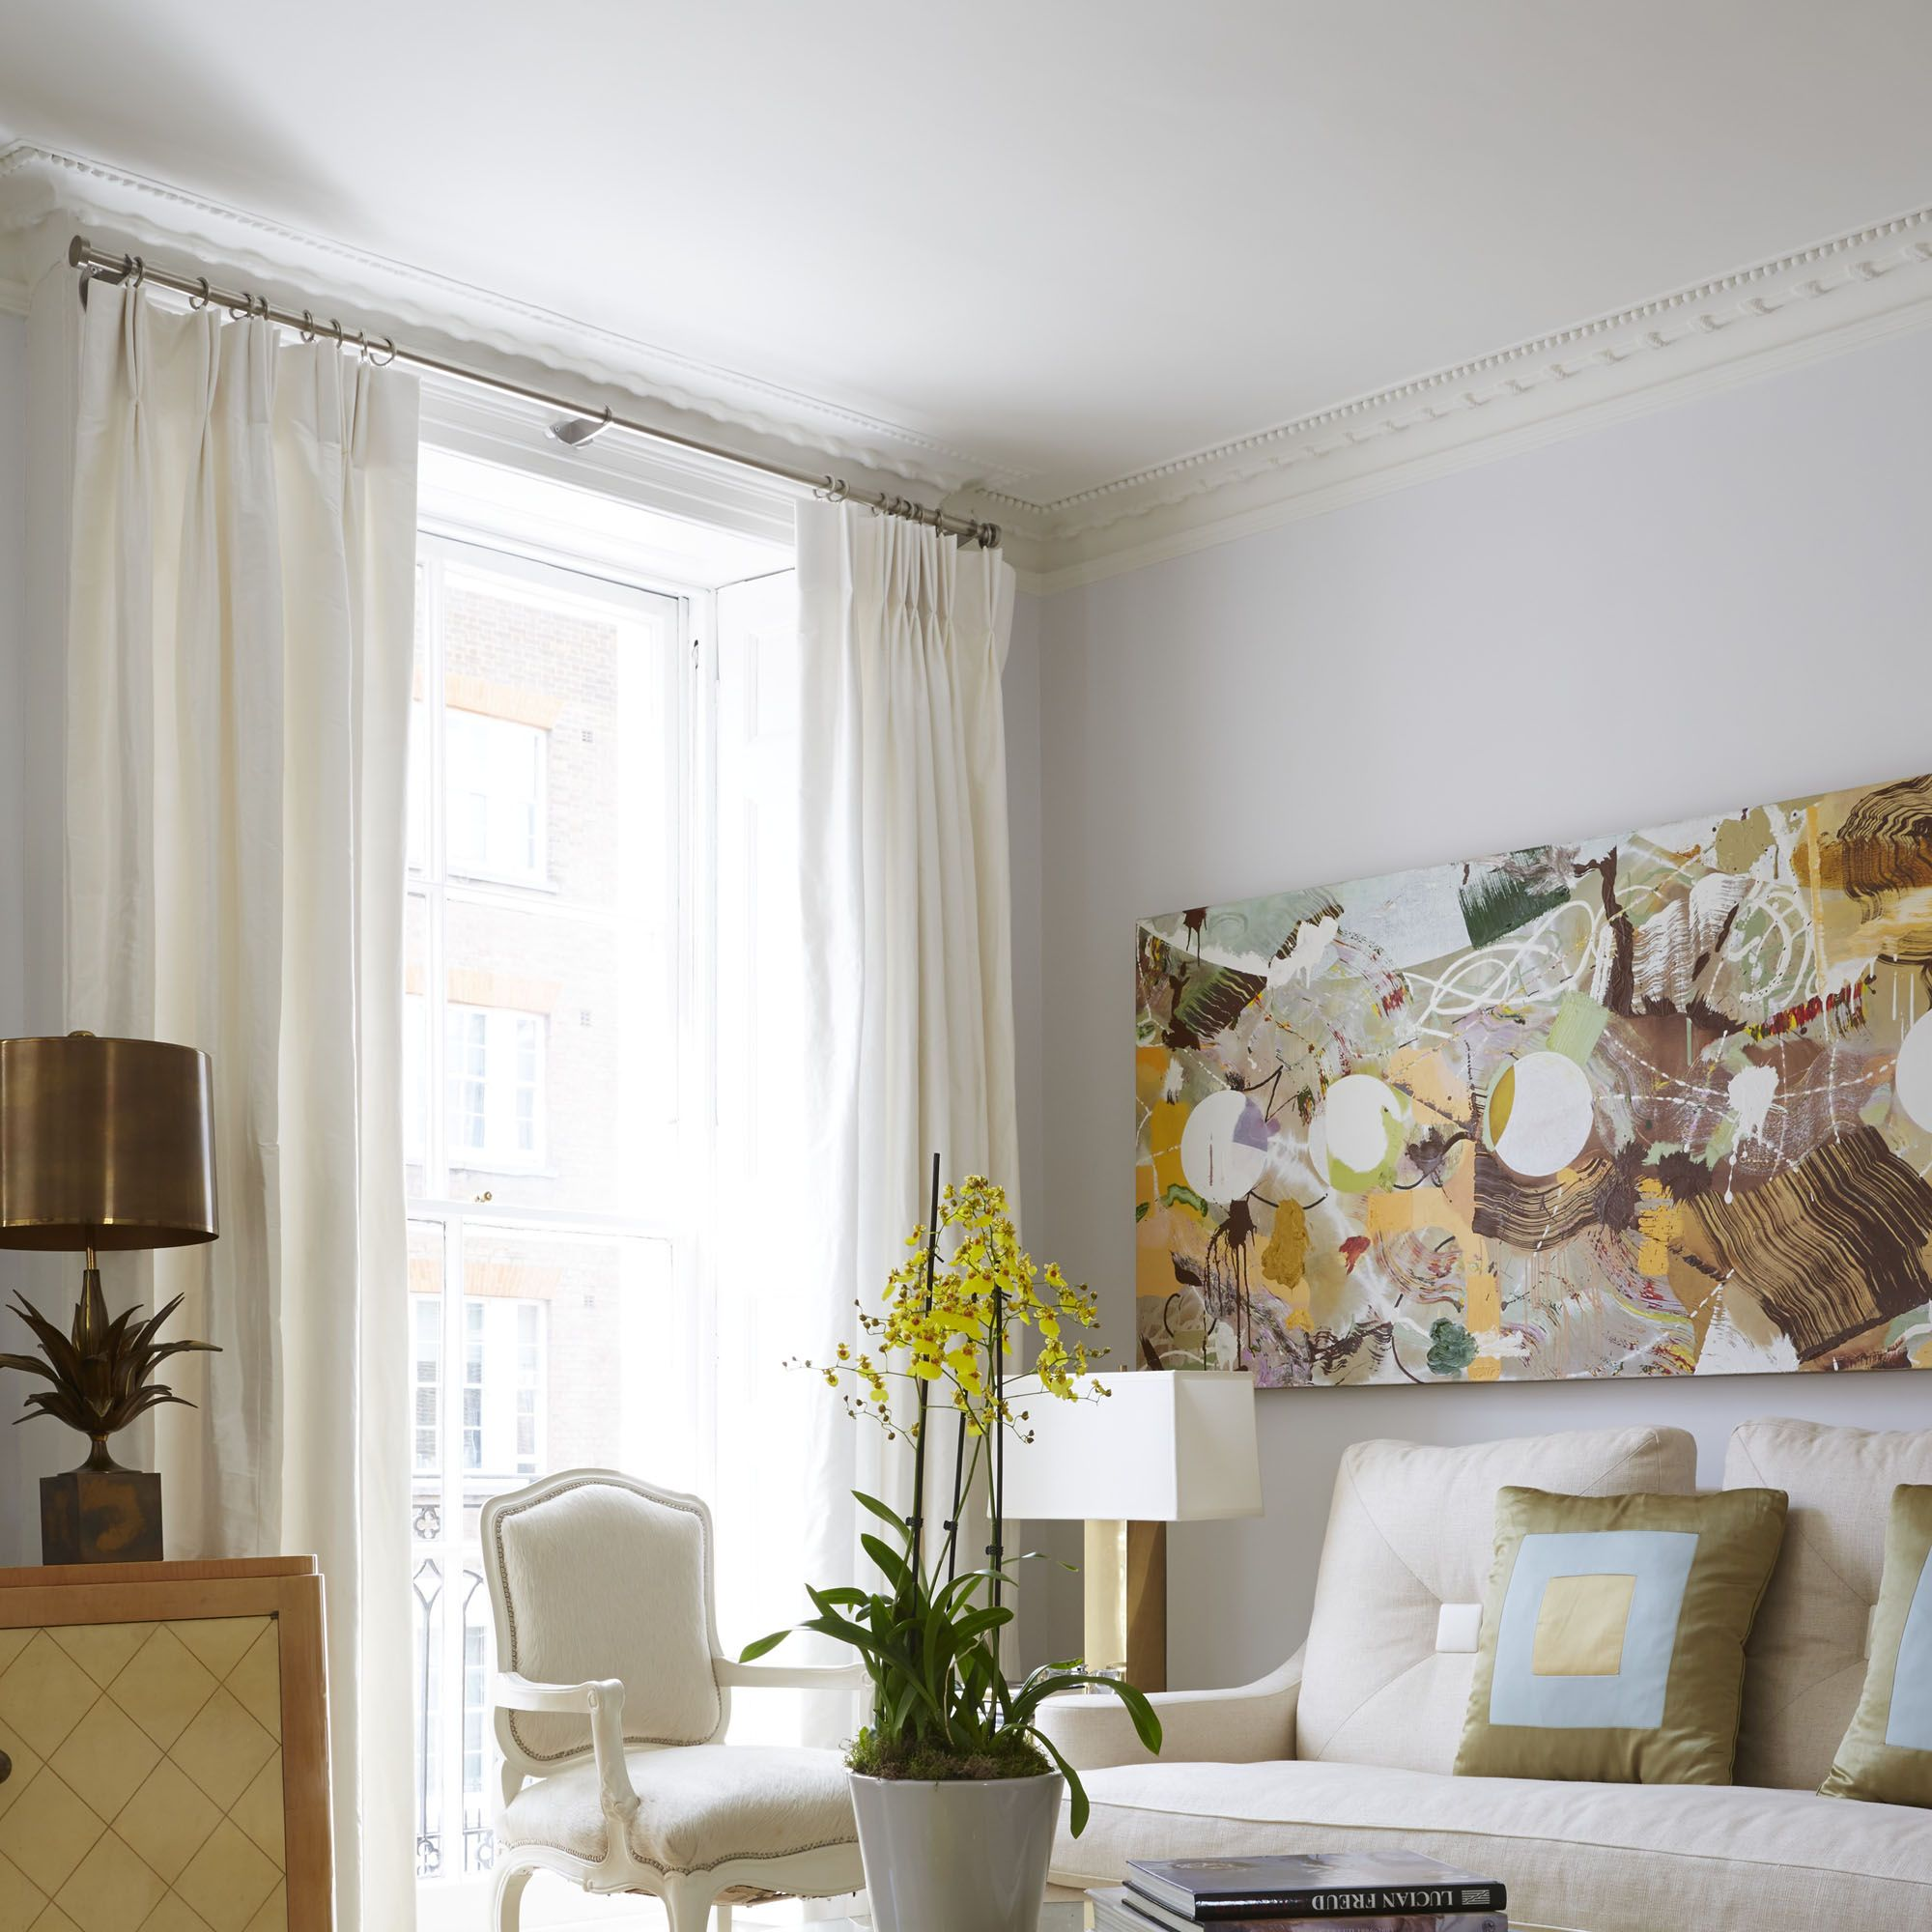 The couple's reception room showcases a 1930s Suzanne Guiguichon commode (at left), an Alain Chervet coffee table, a Fiona Rae painting, and a Jan Showers sofa.